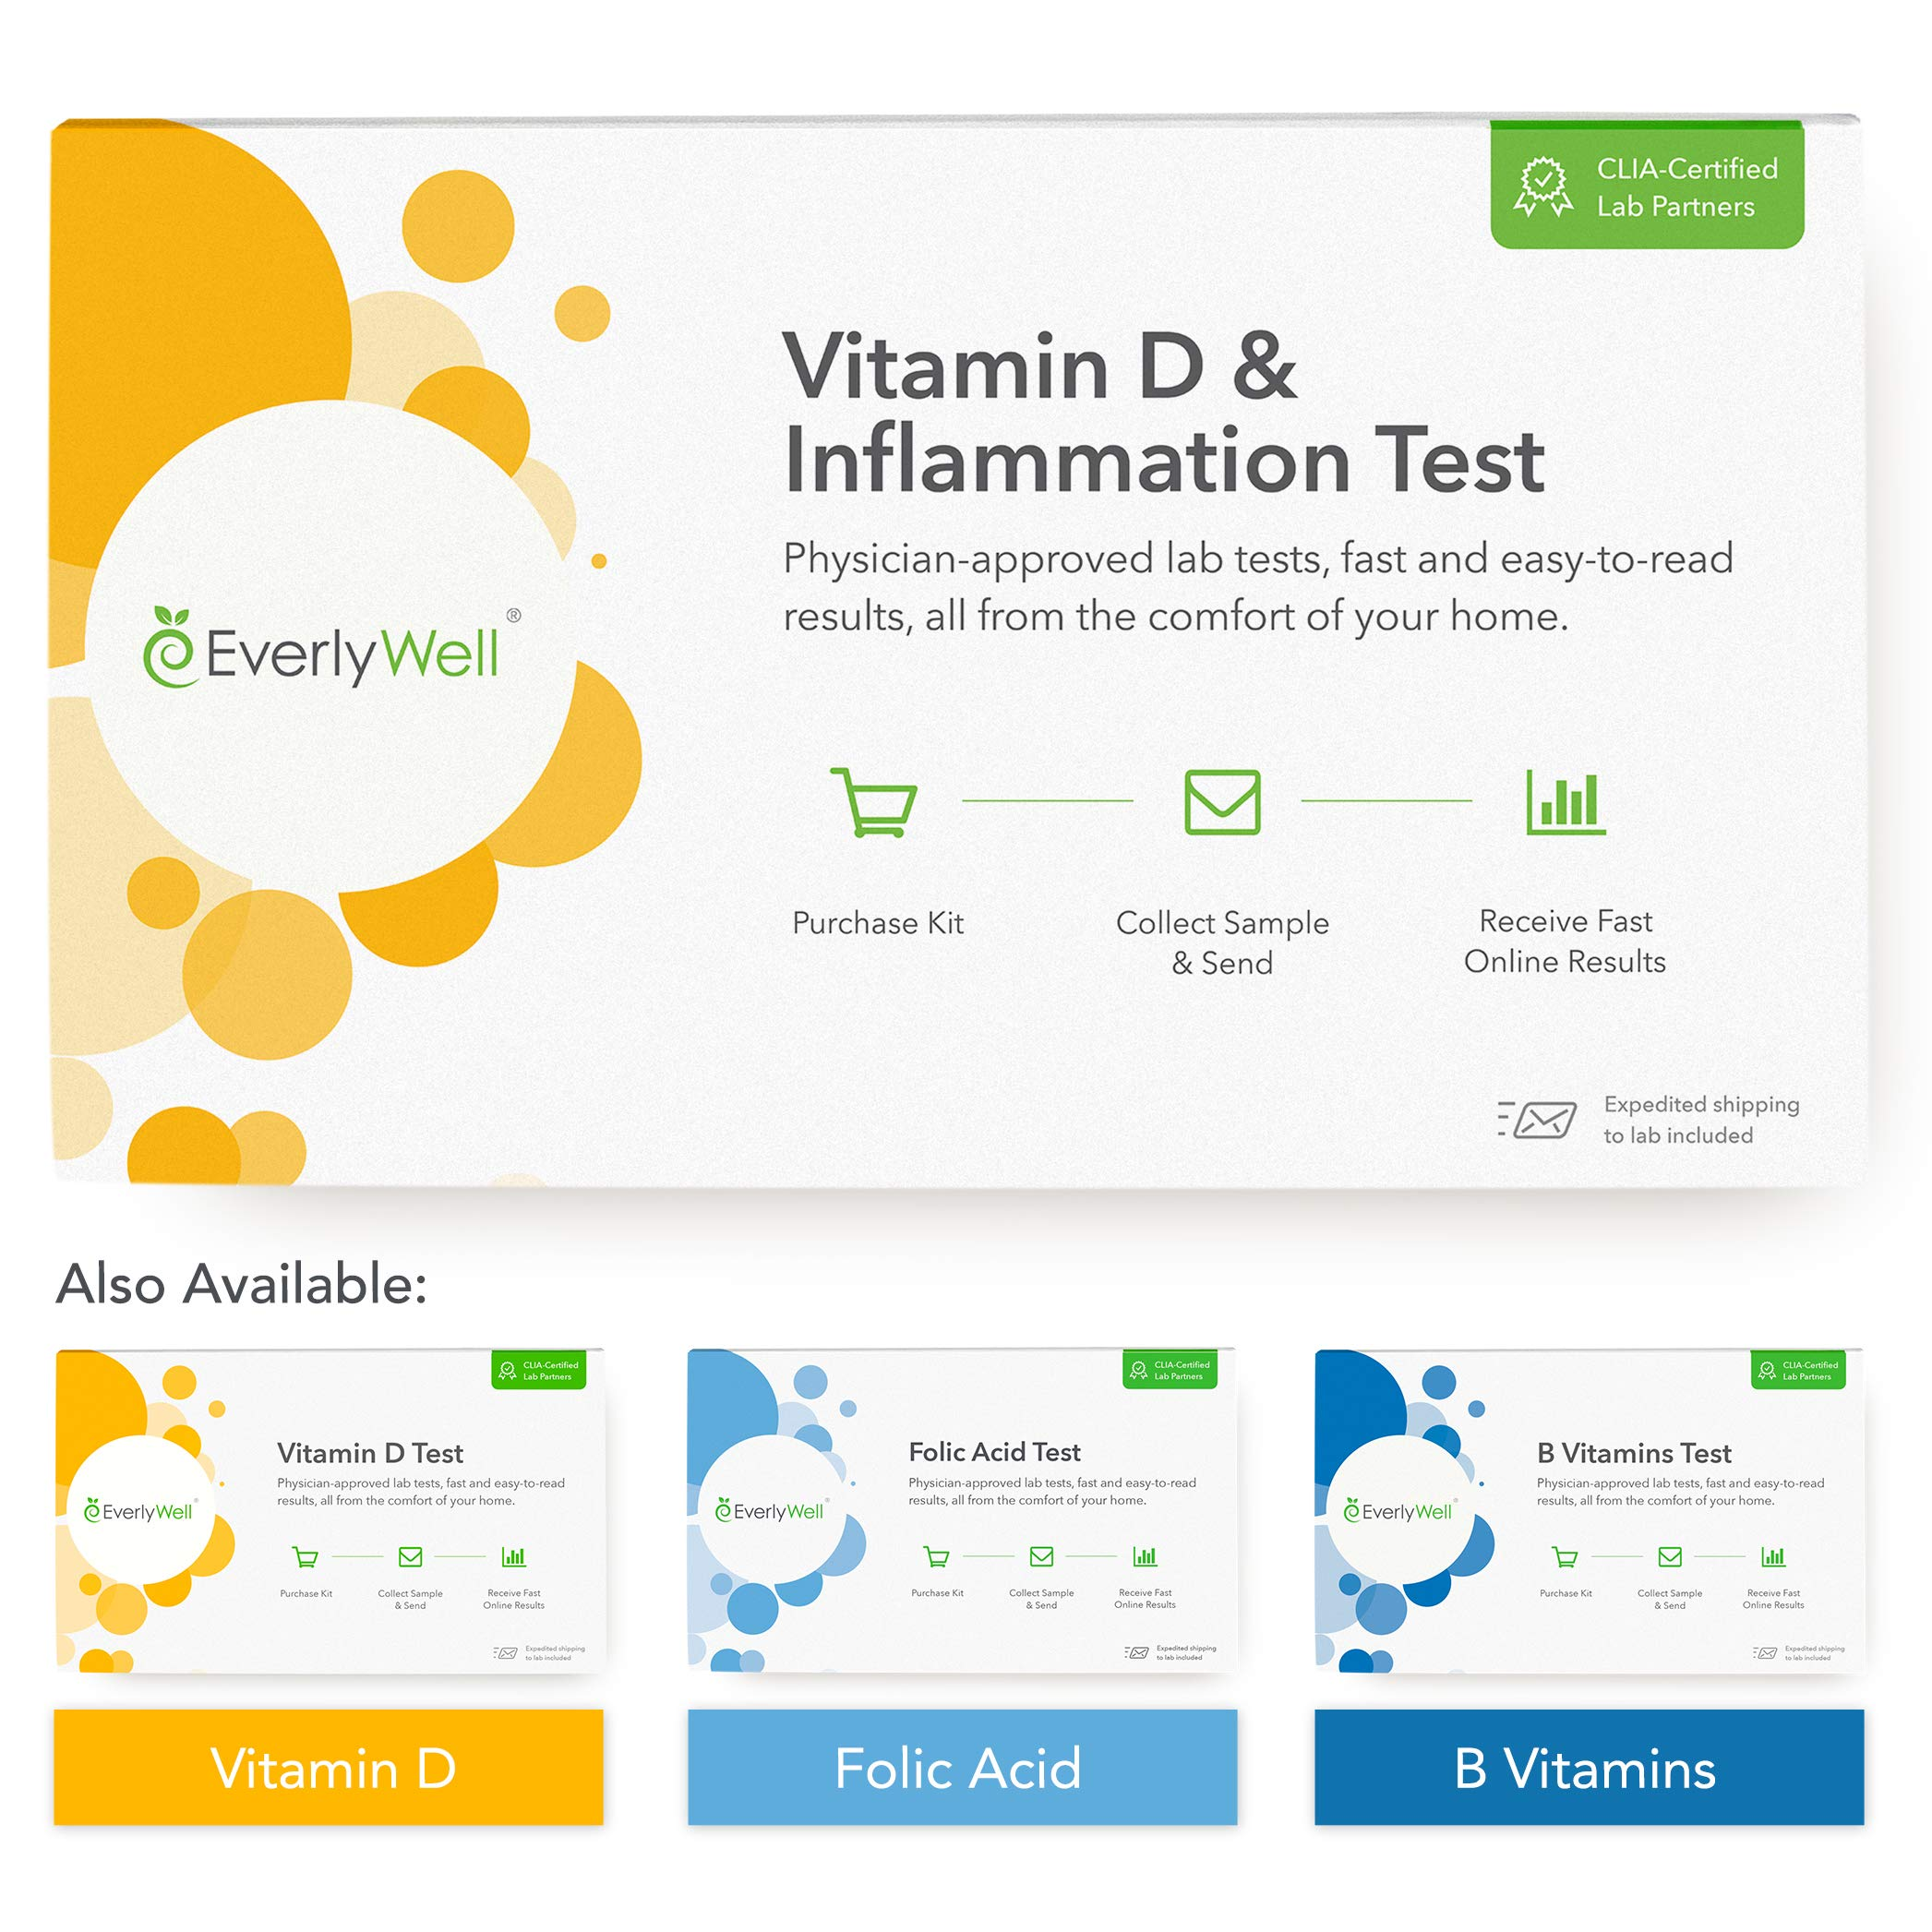 EverlyWell - at-Home Vitamin D & Inflammation Tests - Learn Your Vitamin D Levels and Check for Inflammation in Your Body (Not Available in MD,NY, NJ, RI) by Everly Well